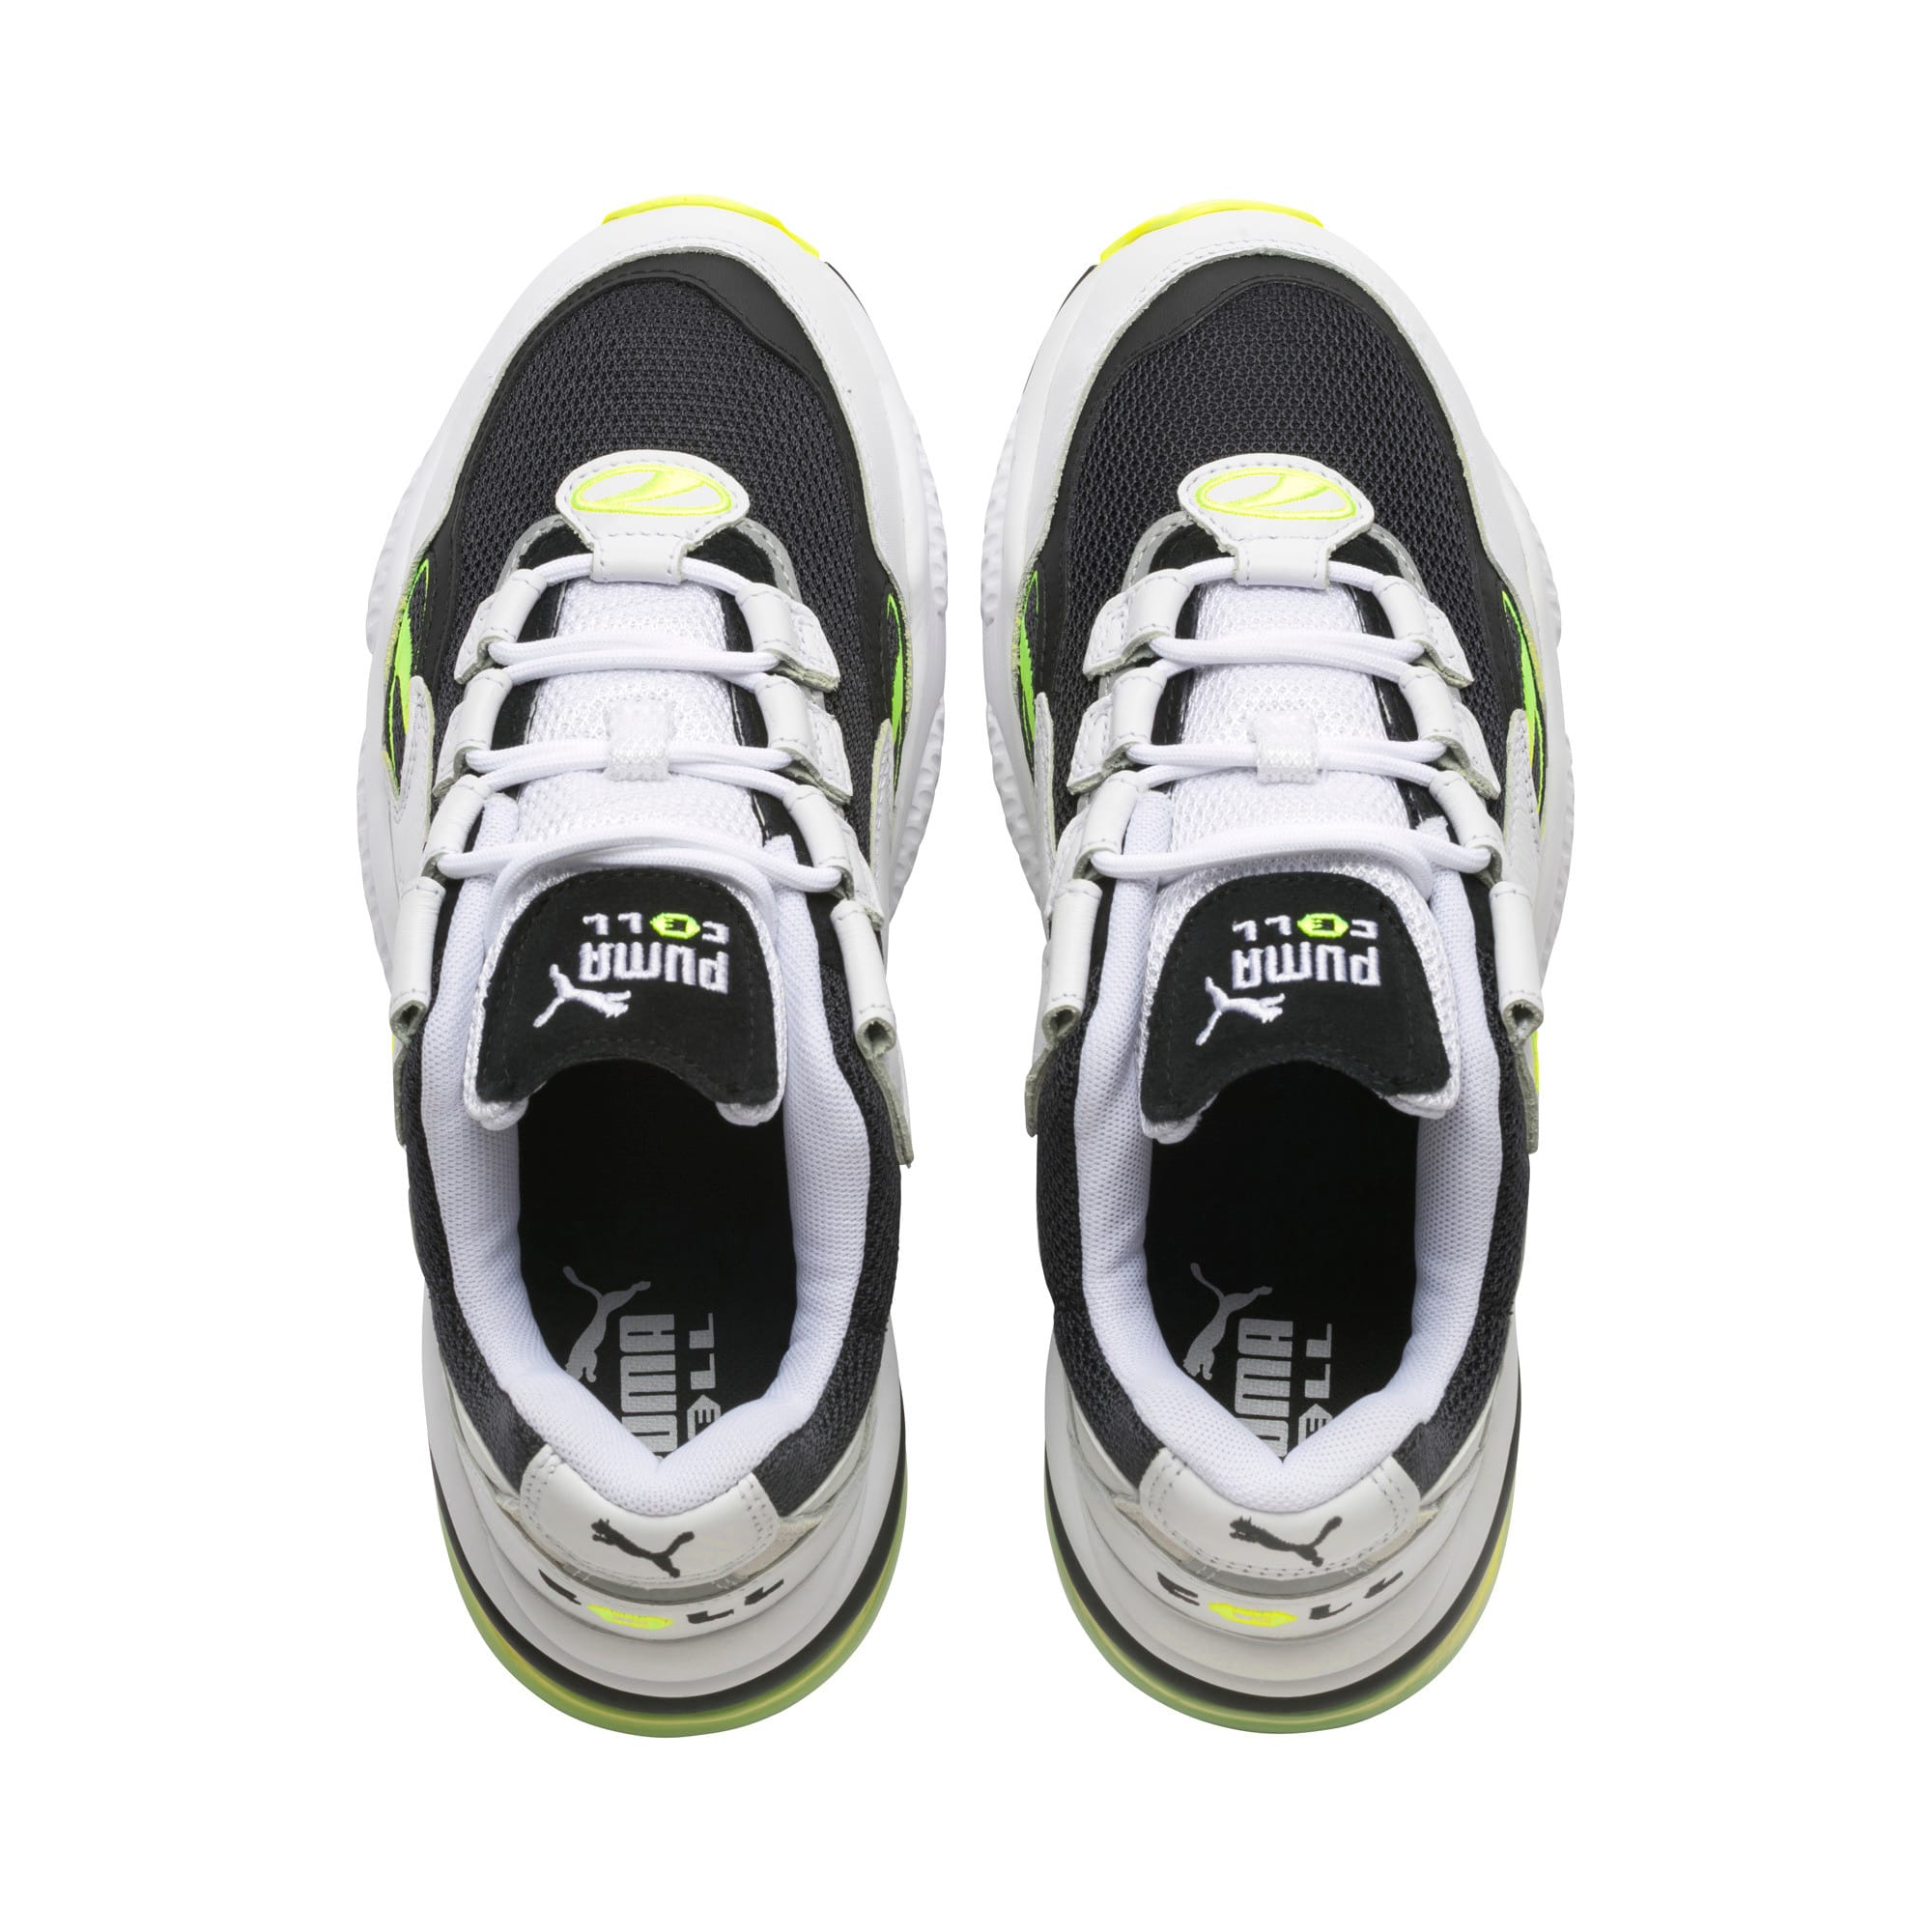 Thumbnail 6 of CELL Venom Hype Trainers, Pu Black-P White-Yell Alert, medium